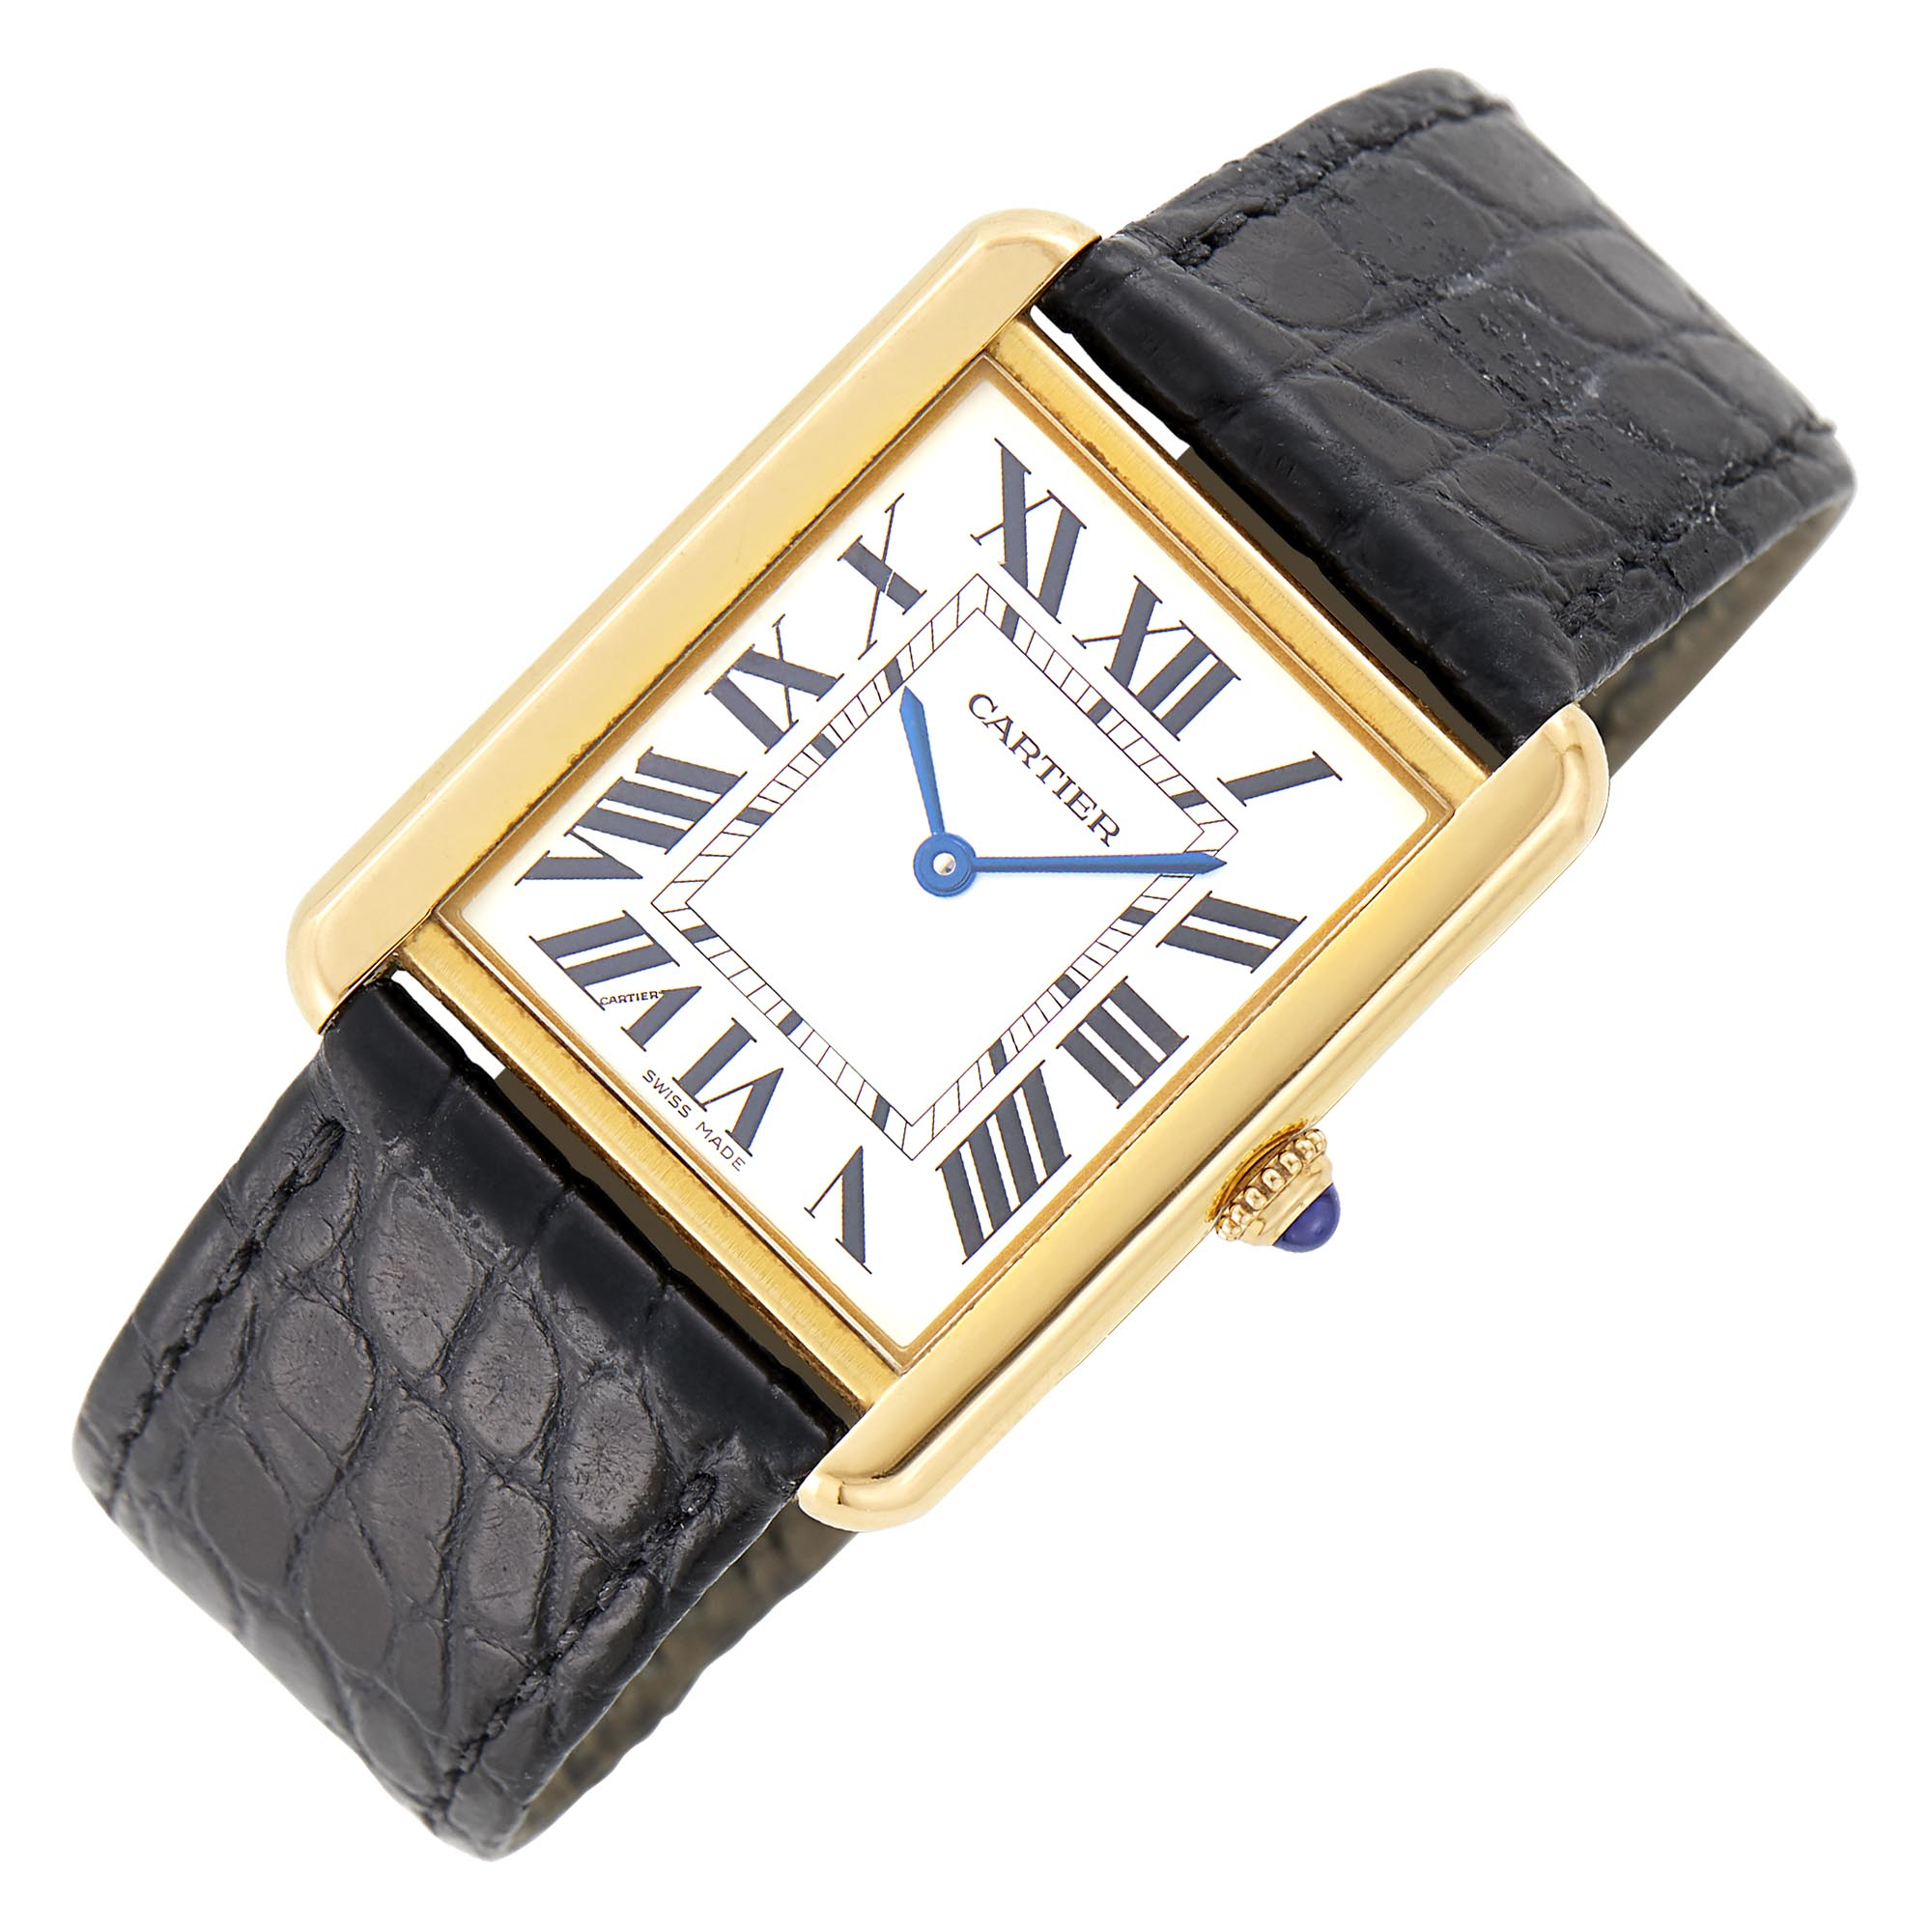 Lot image - Cartier Gold and Stainless Steel Tank Wristwatch, Ref. 3167